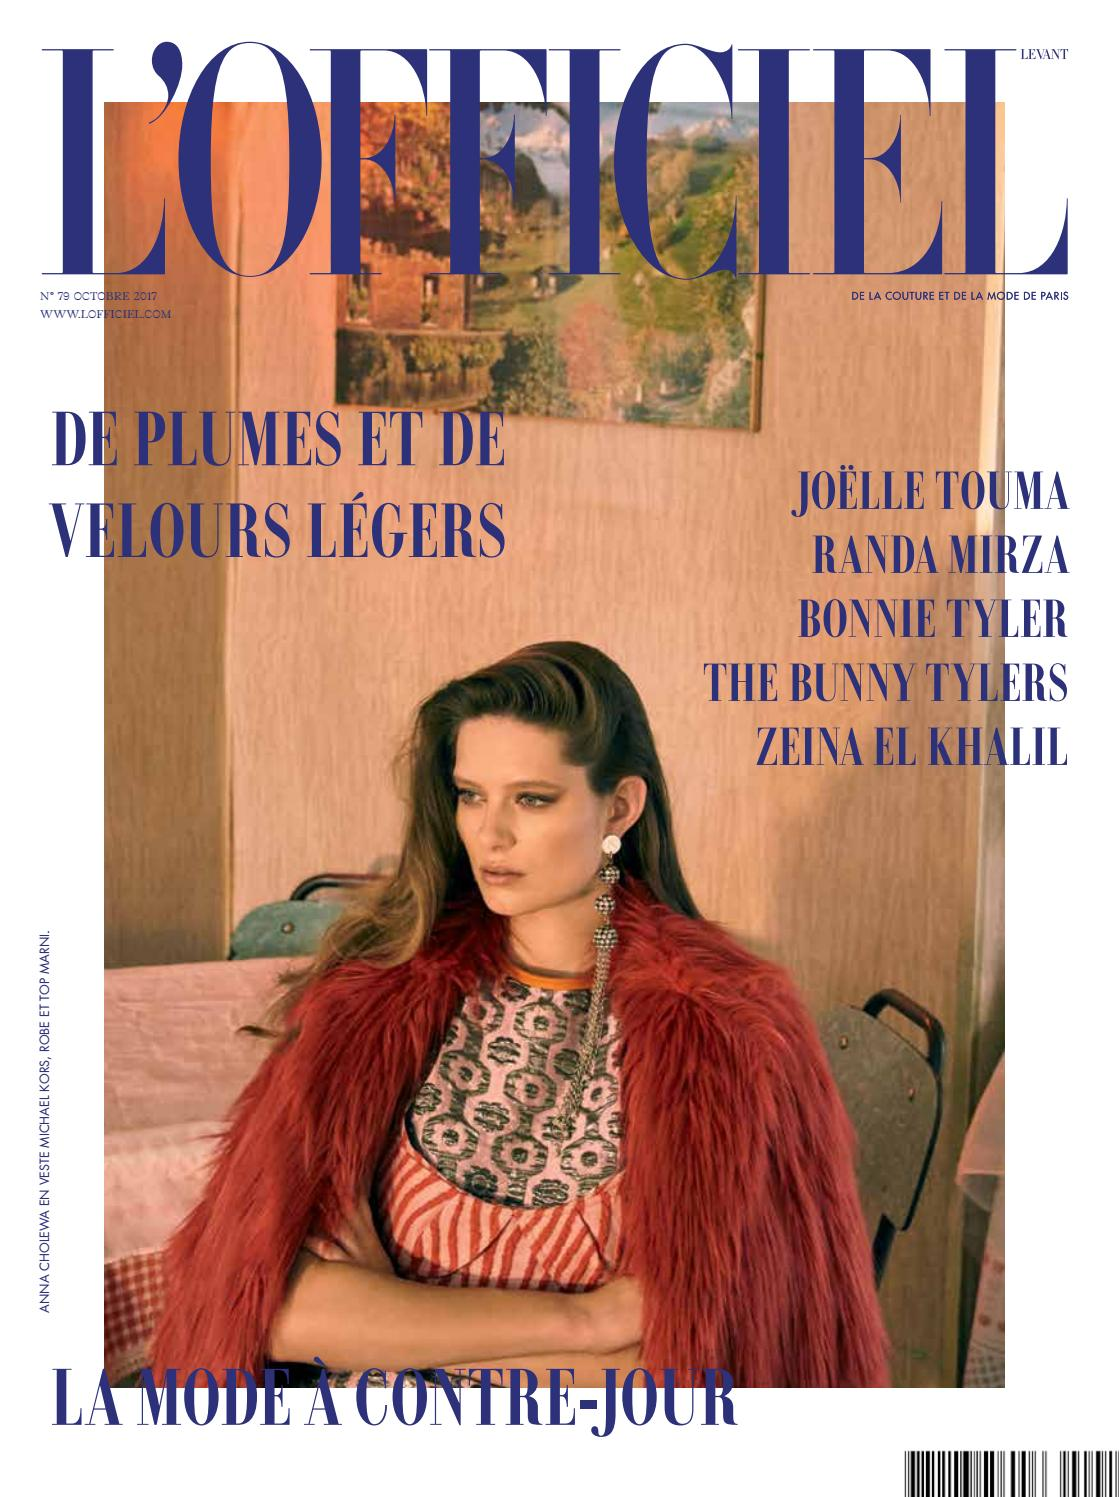 74e17628b0bfa6 L Officiel-Levant, October Issue 79 by L Officiel Levant - issuu